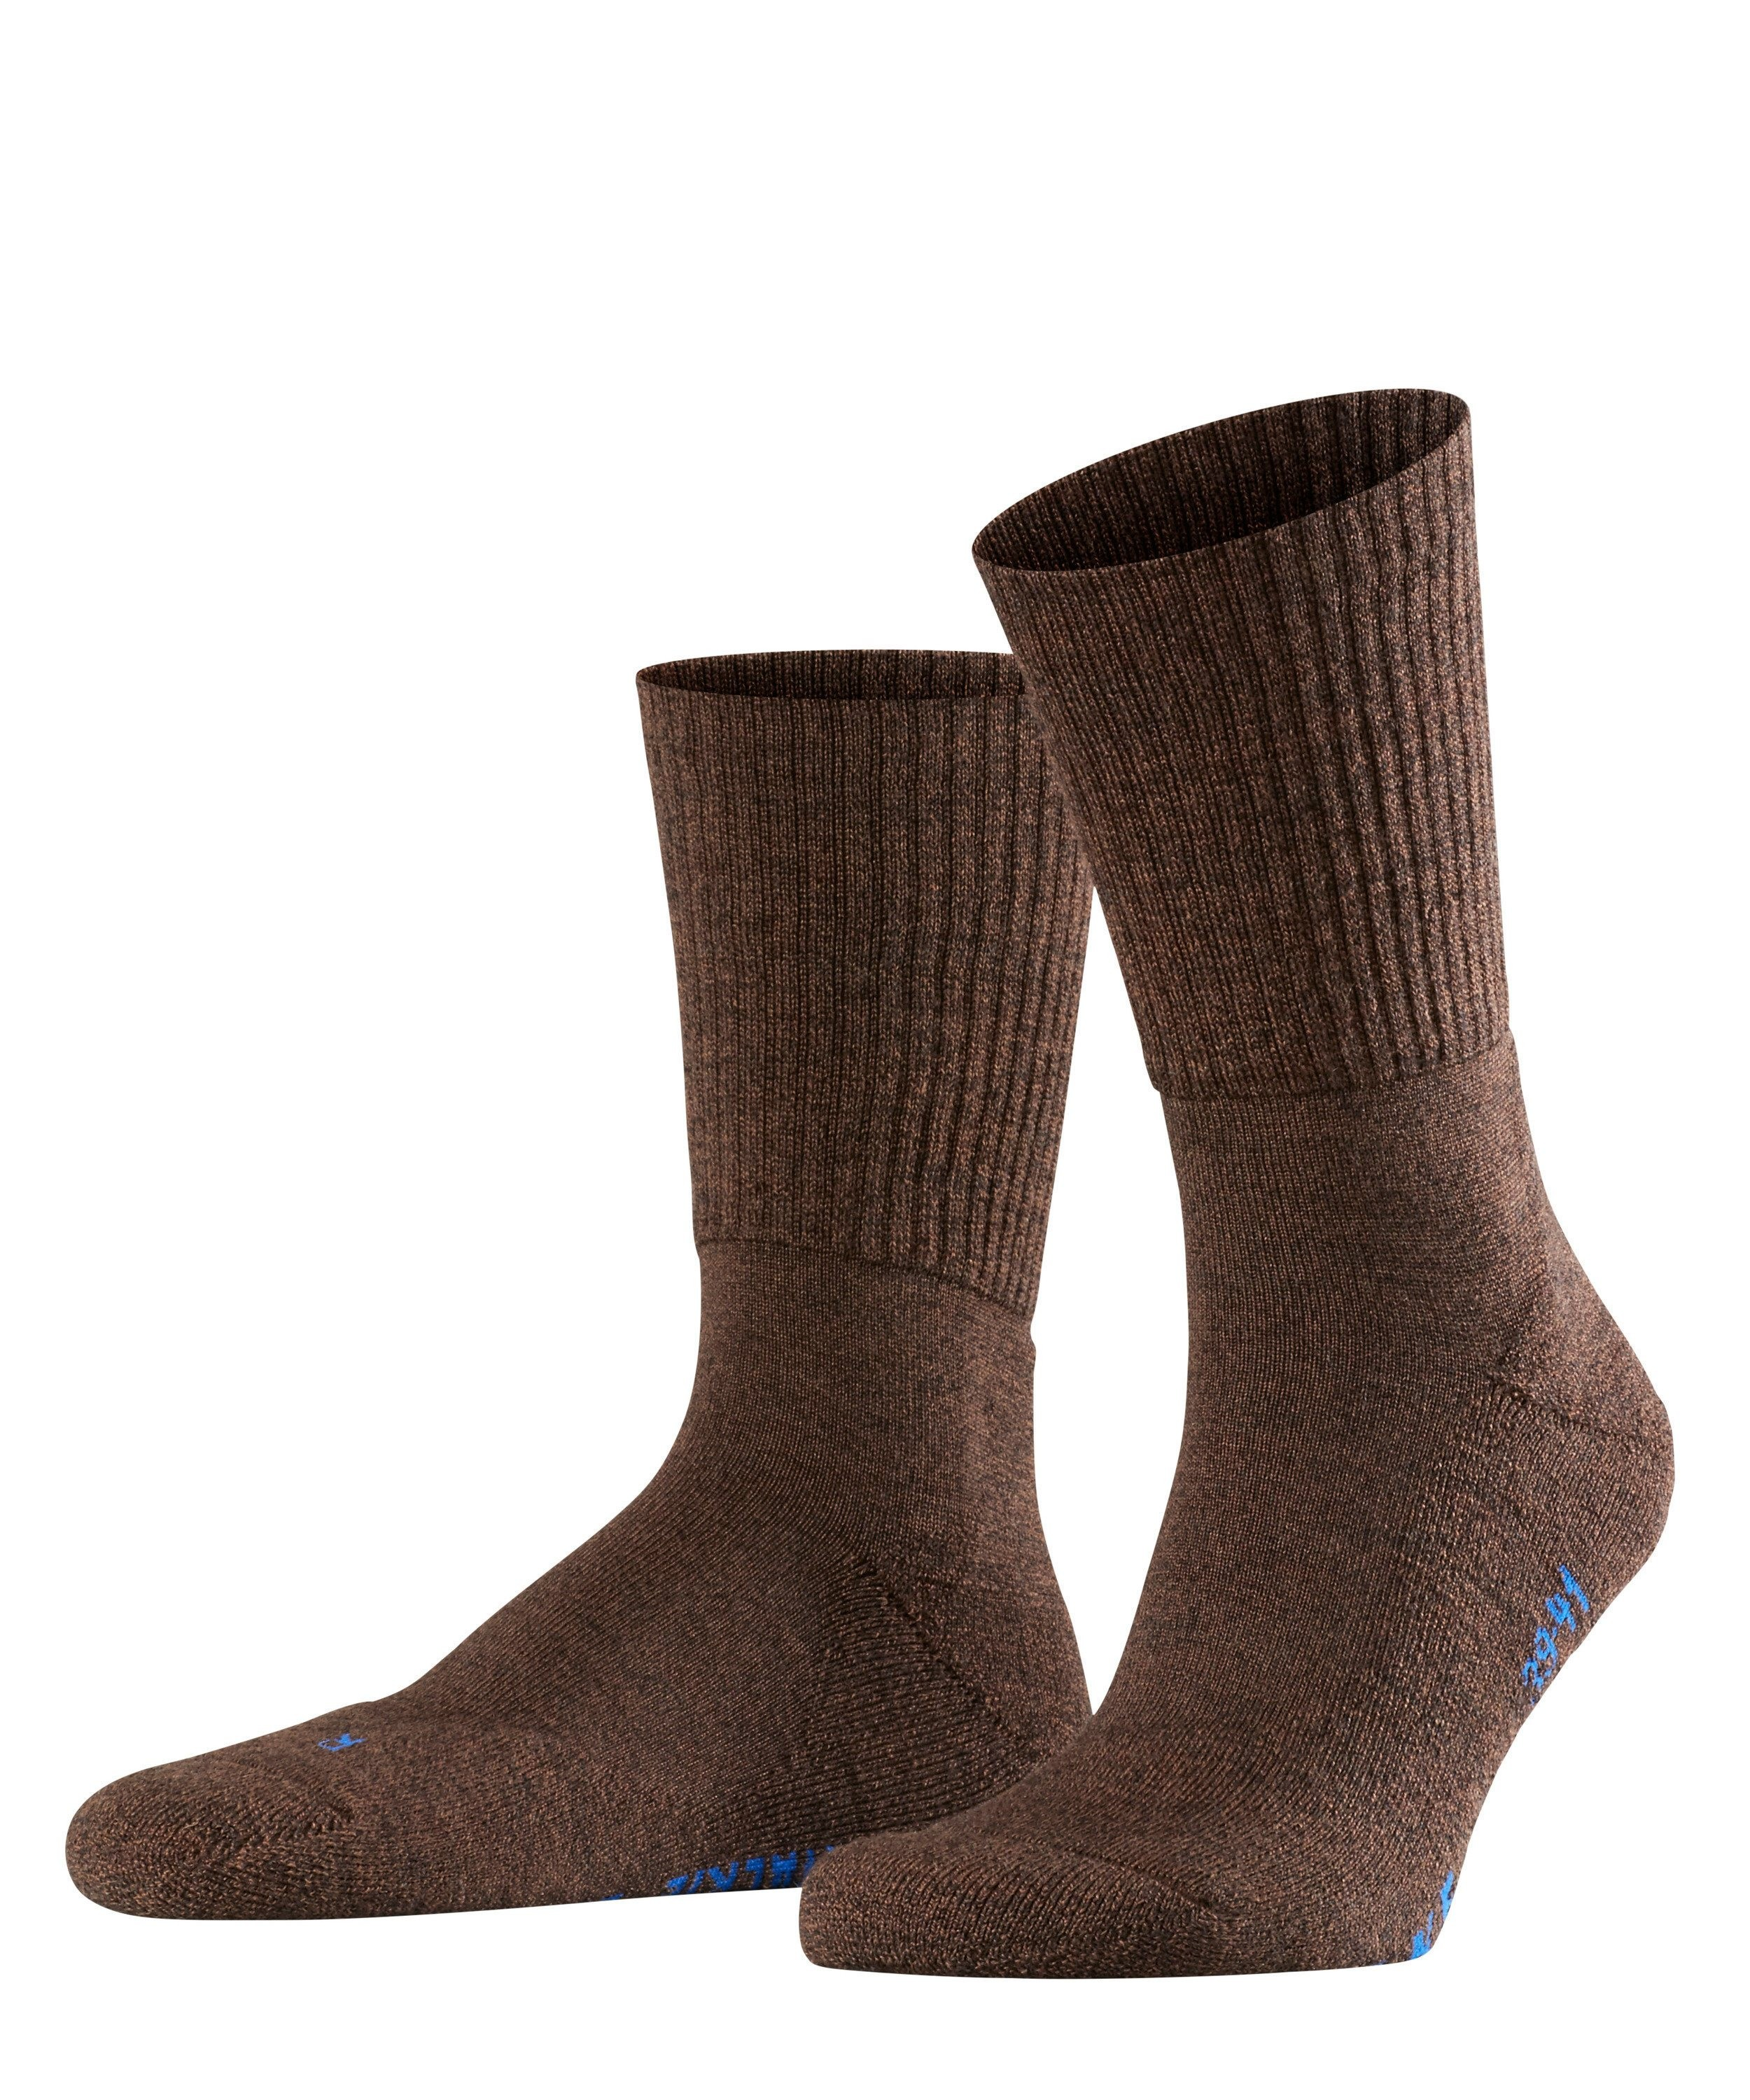 Chaussette de sport Unisexe - 66% Laine - Falke Men Walkie Light 16486 Brun Dark Brown 5450